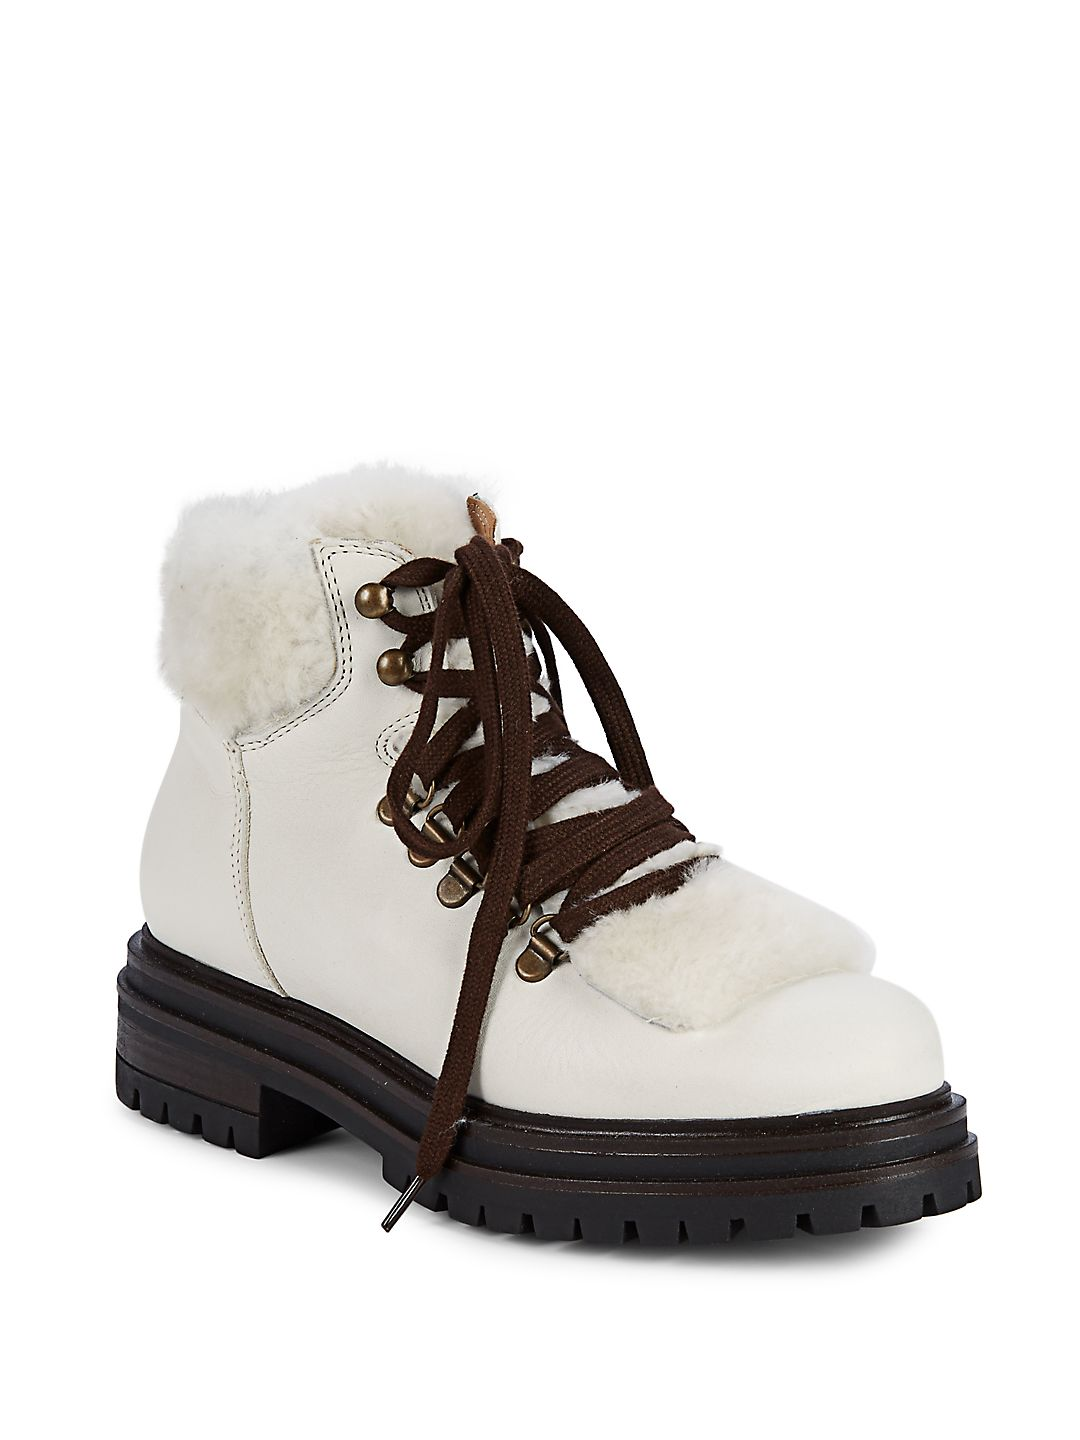 Faux Fur-Trimmed Hiking Boots